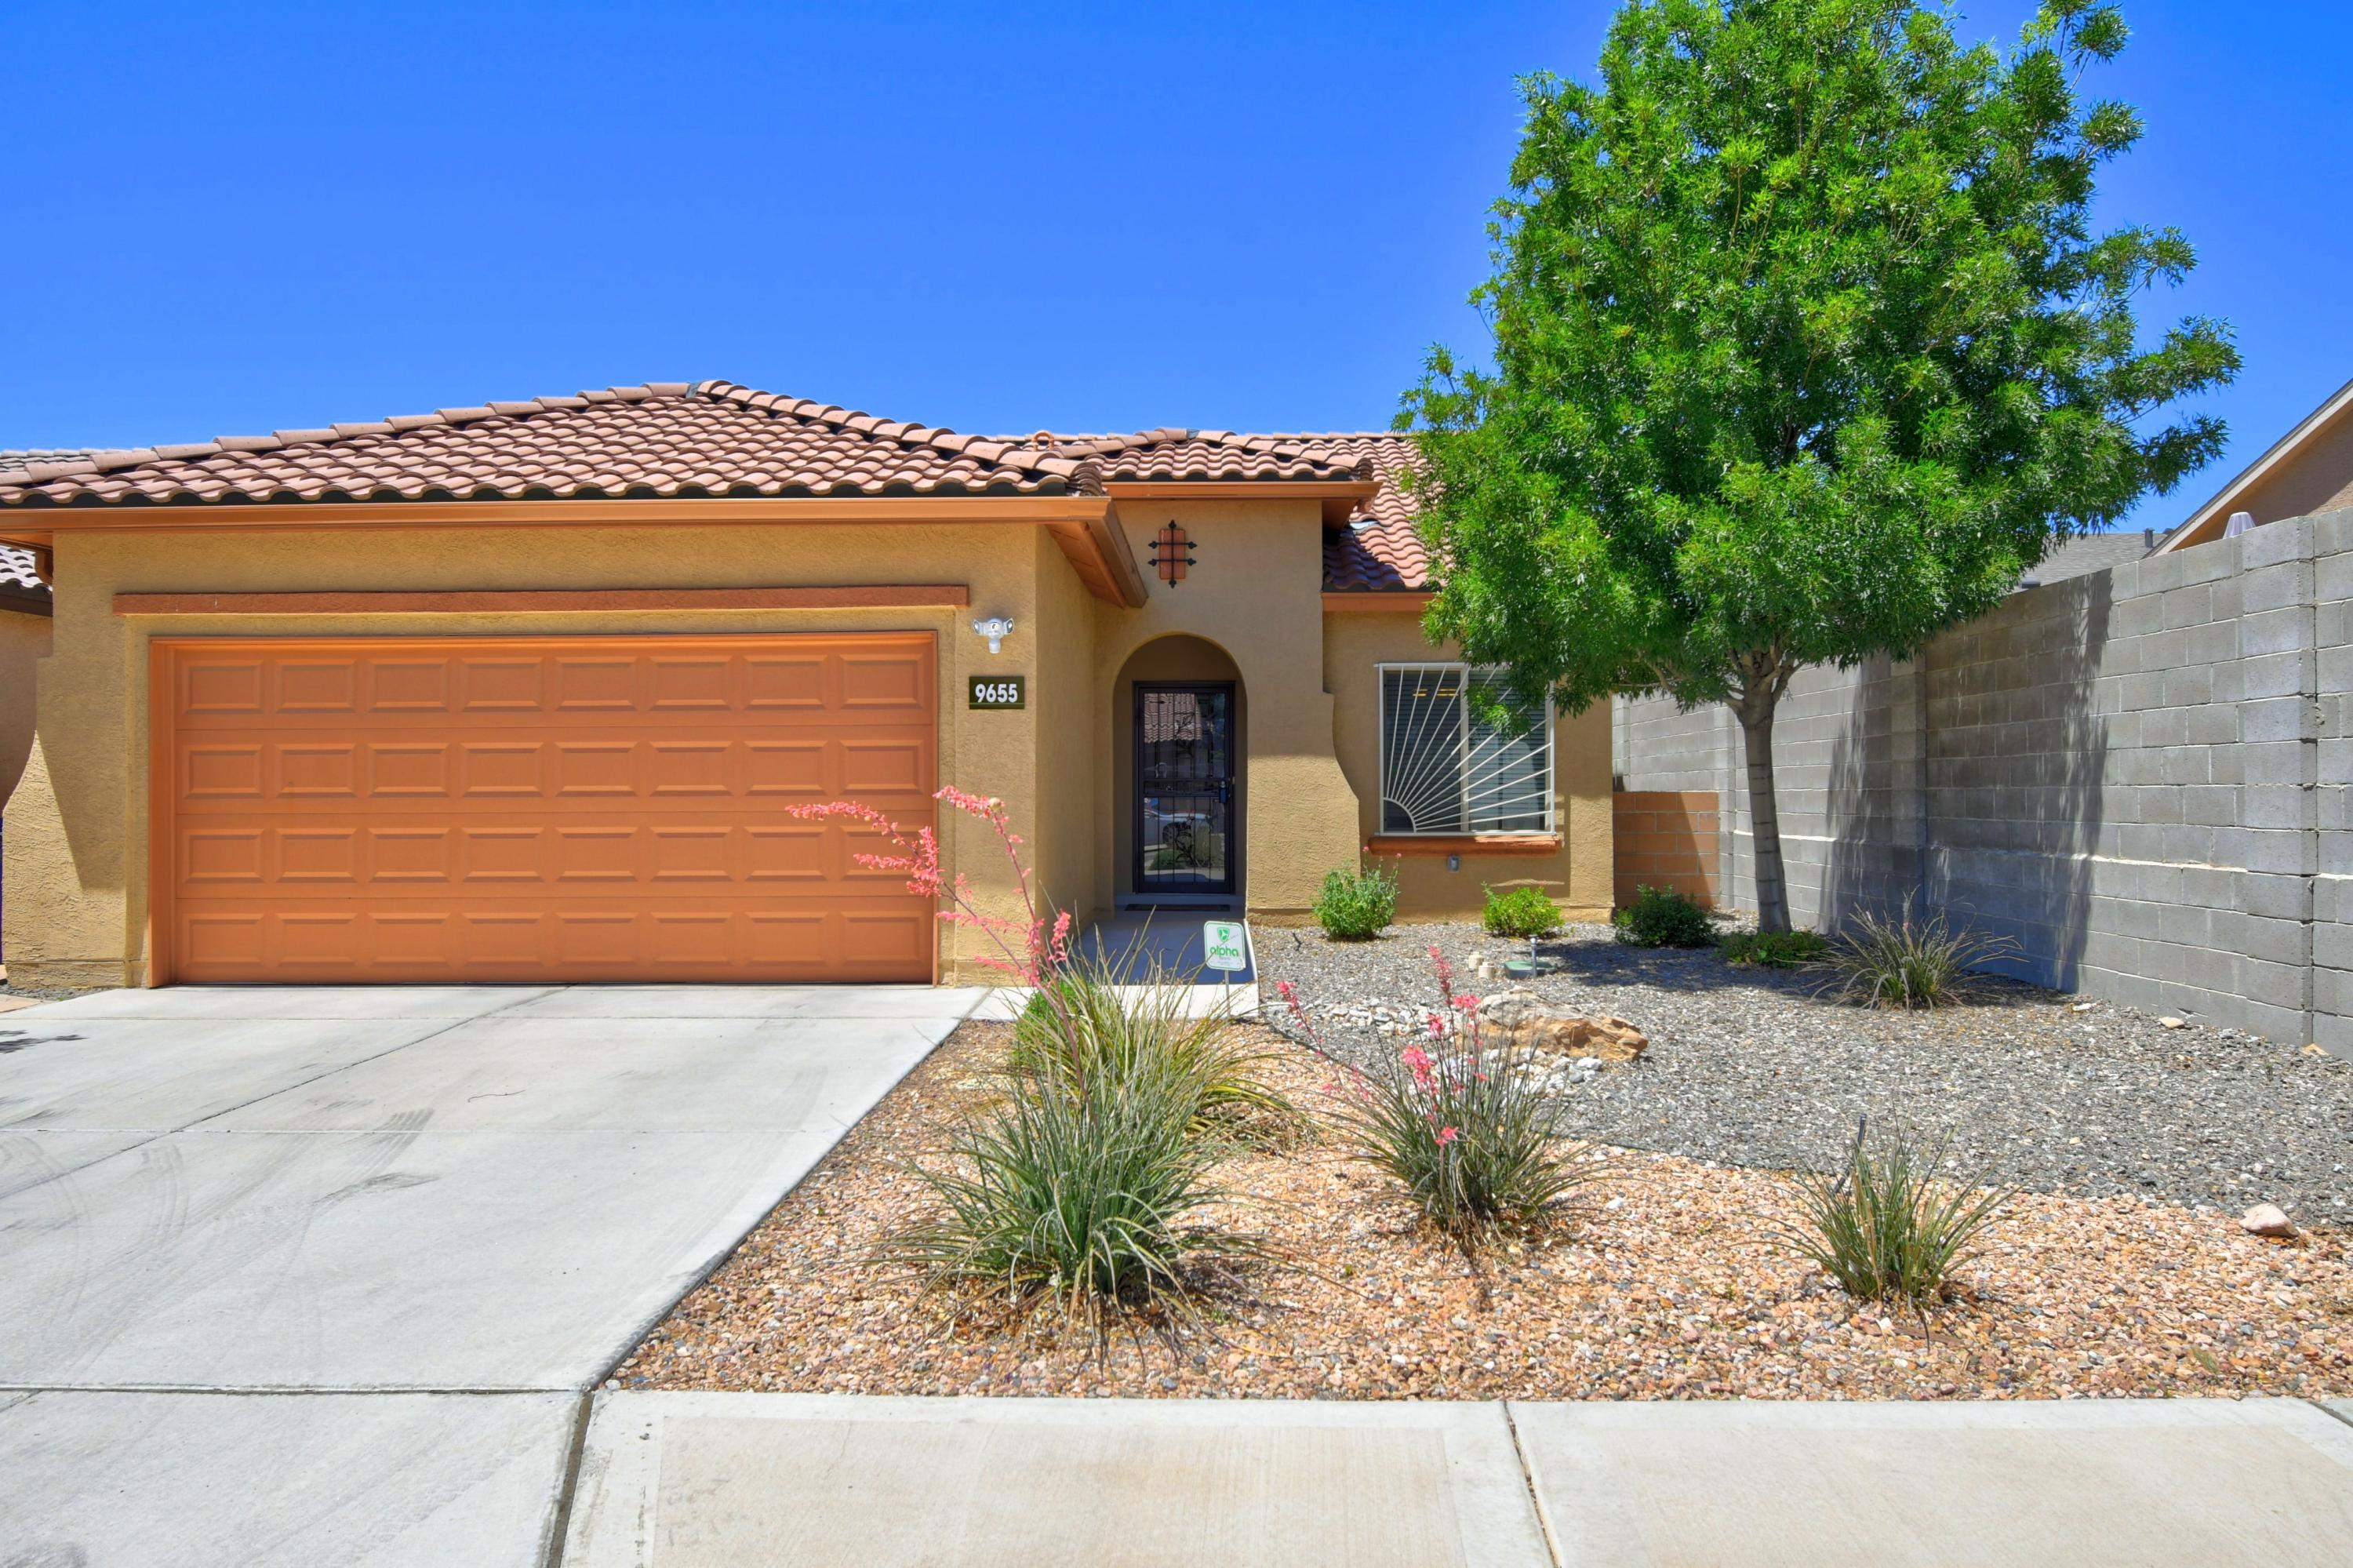 Welcome home to The Boulders!  This move-in ready gem is full of upgrades.  NO Carpet....Tile & NEW Vinyl Wood-Look Flooring (2019).  Kitchen has Granite counters, NEW Gas Range (2020) and Eat-In Kitchen.  This beautiful Pulte Home is  Build Green New Mexico Certified and includes Low-E windows, tankless water heater, refrigerated A/C and tile roof.  The gorgeous SW landscaped backyard has a covered patio, Drip-System, and turf for easy maintenance.  Enjoy the privacy of being at the end of this lovely street, all while being close to restaurants, stores, and more.  Come see today!